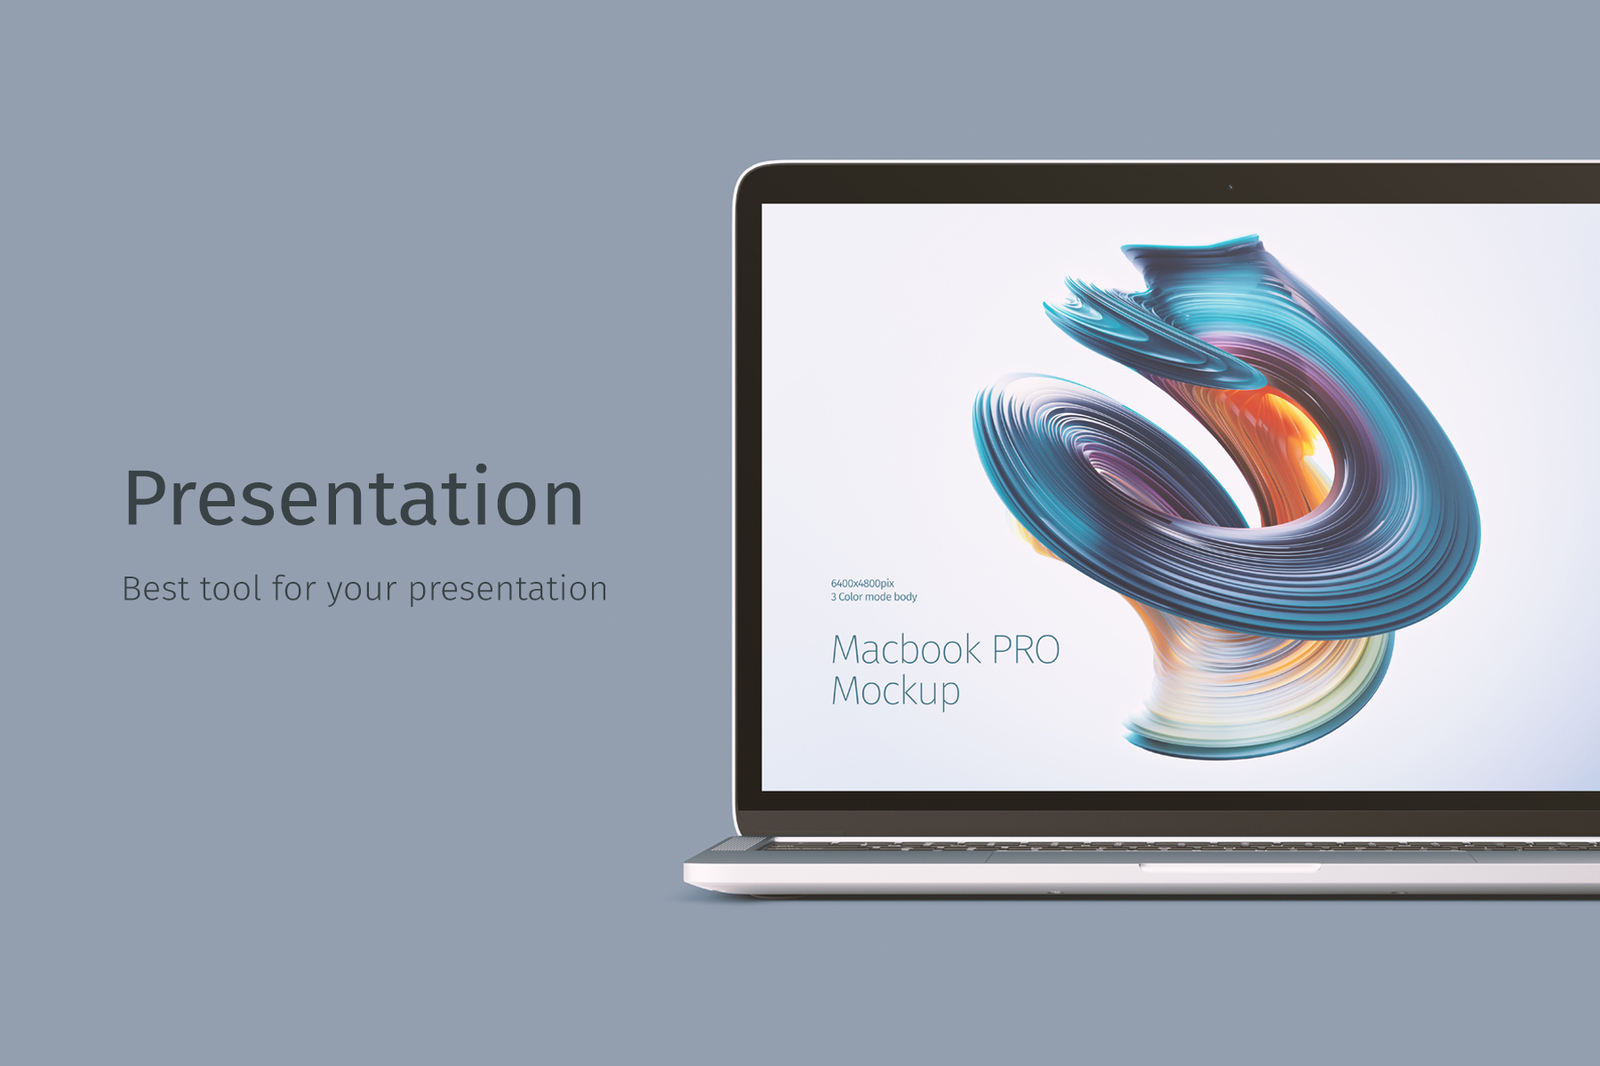 Macbook PRO Creative mockups